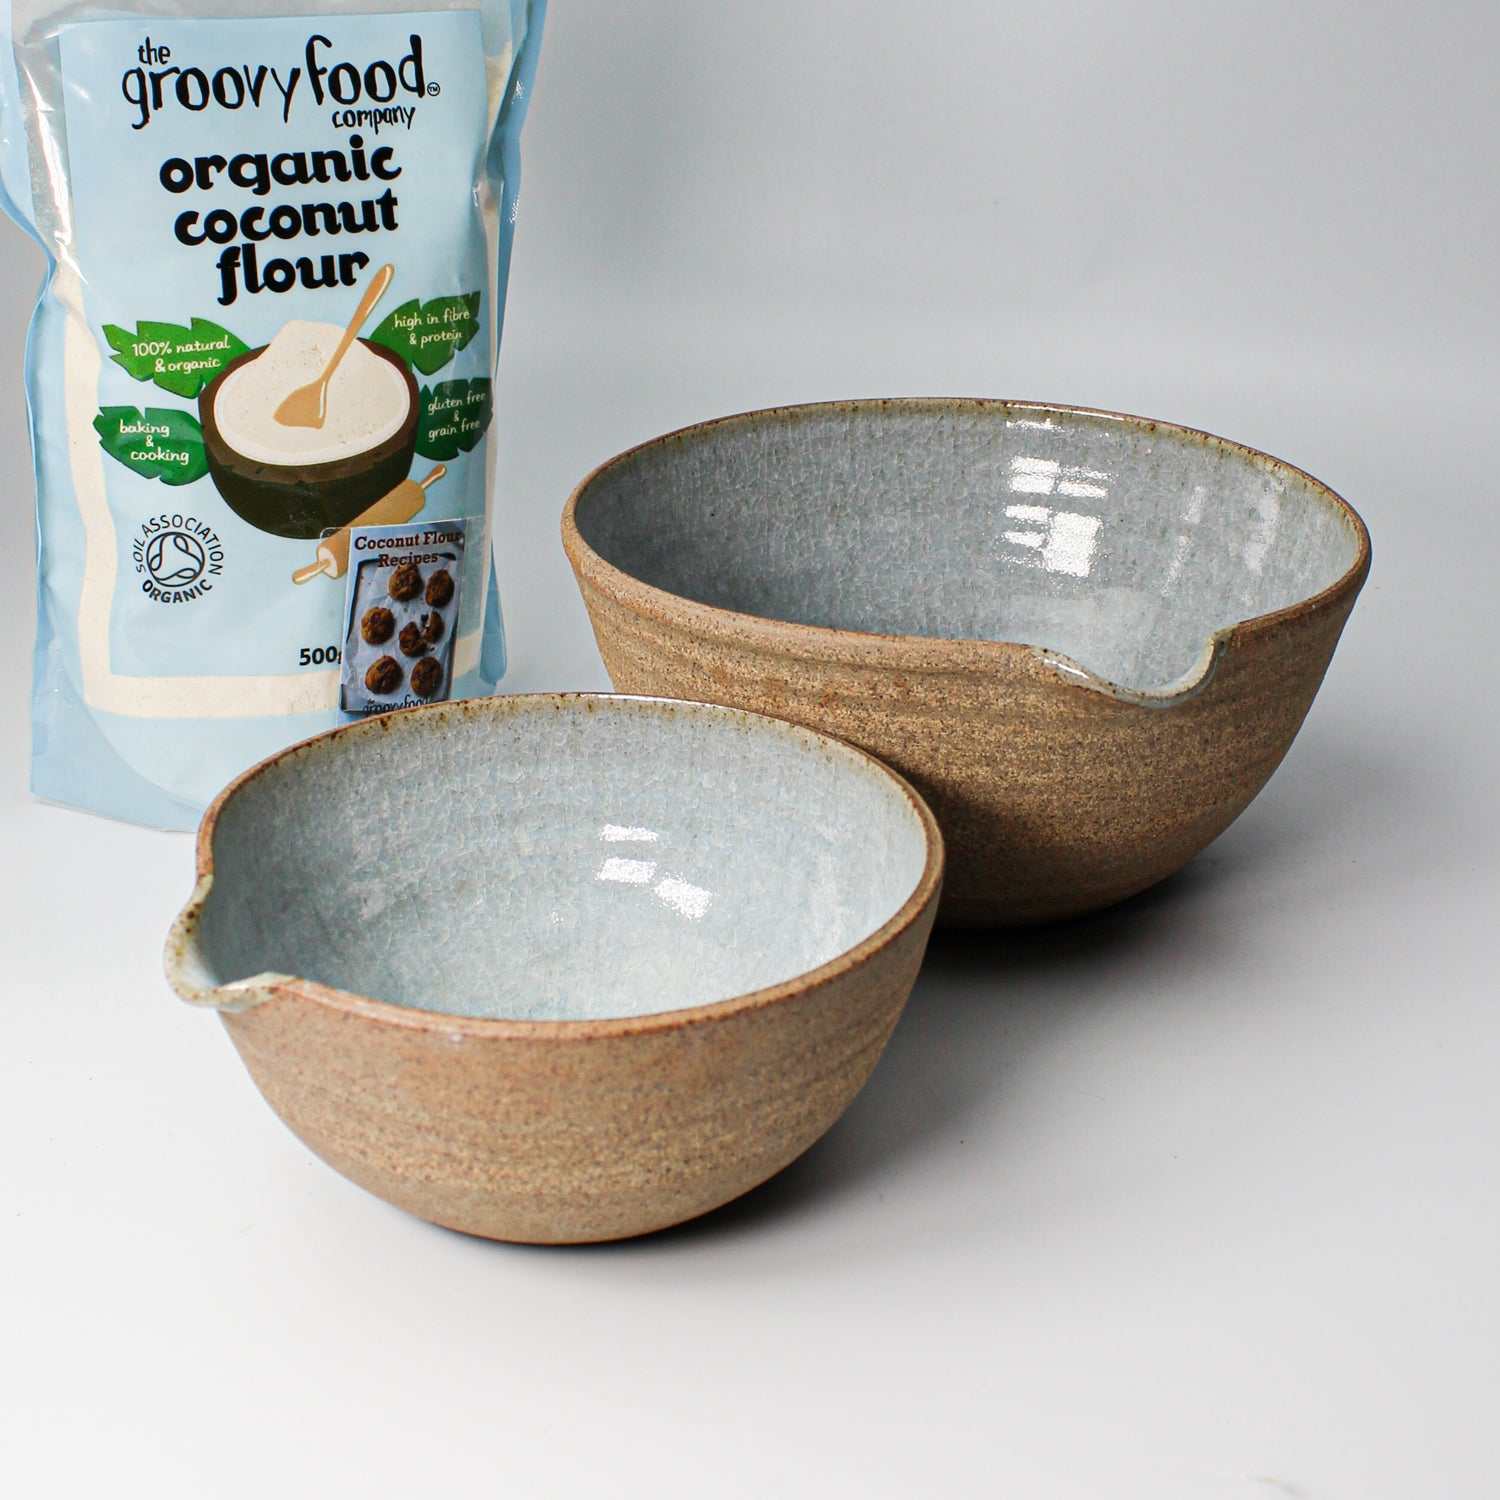 Two ceramic pouring boxes with blue inner glaze and external natural outer next to a bag of organic coconut flour